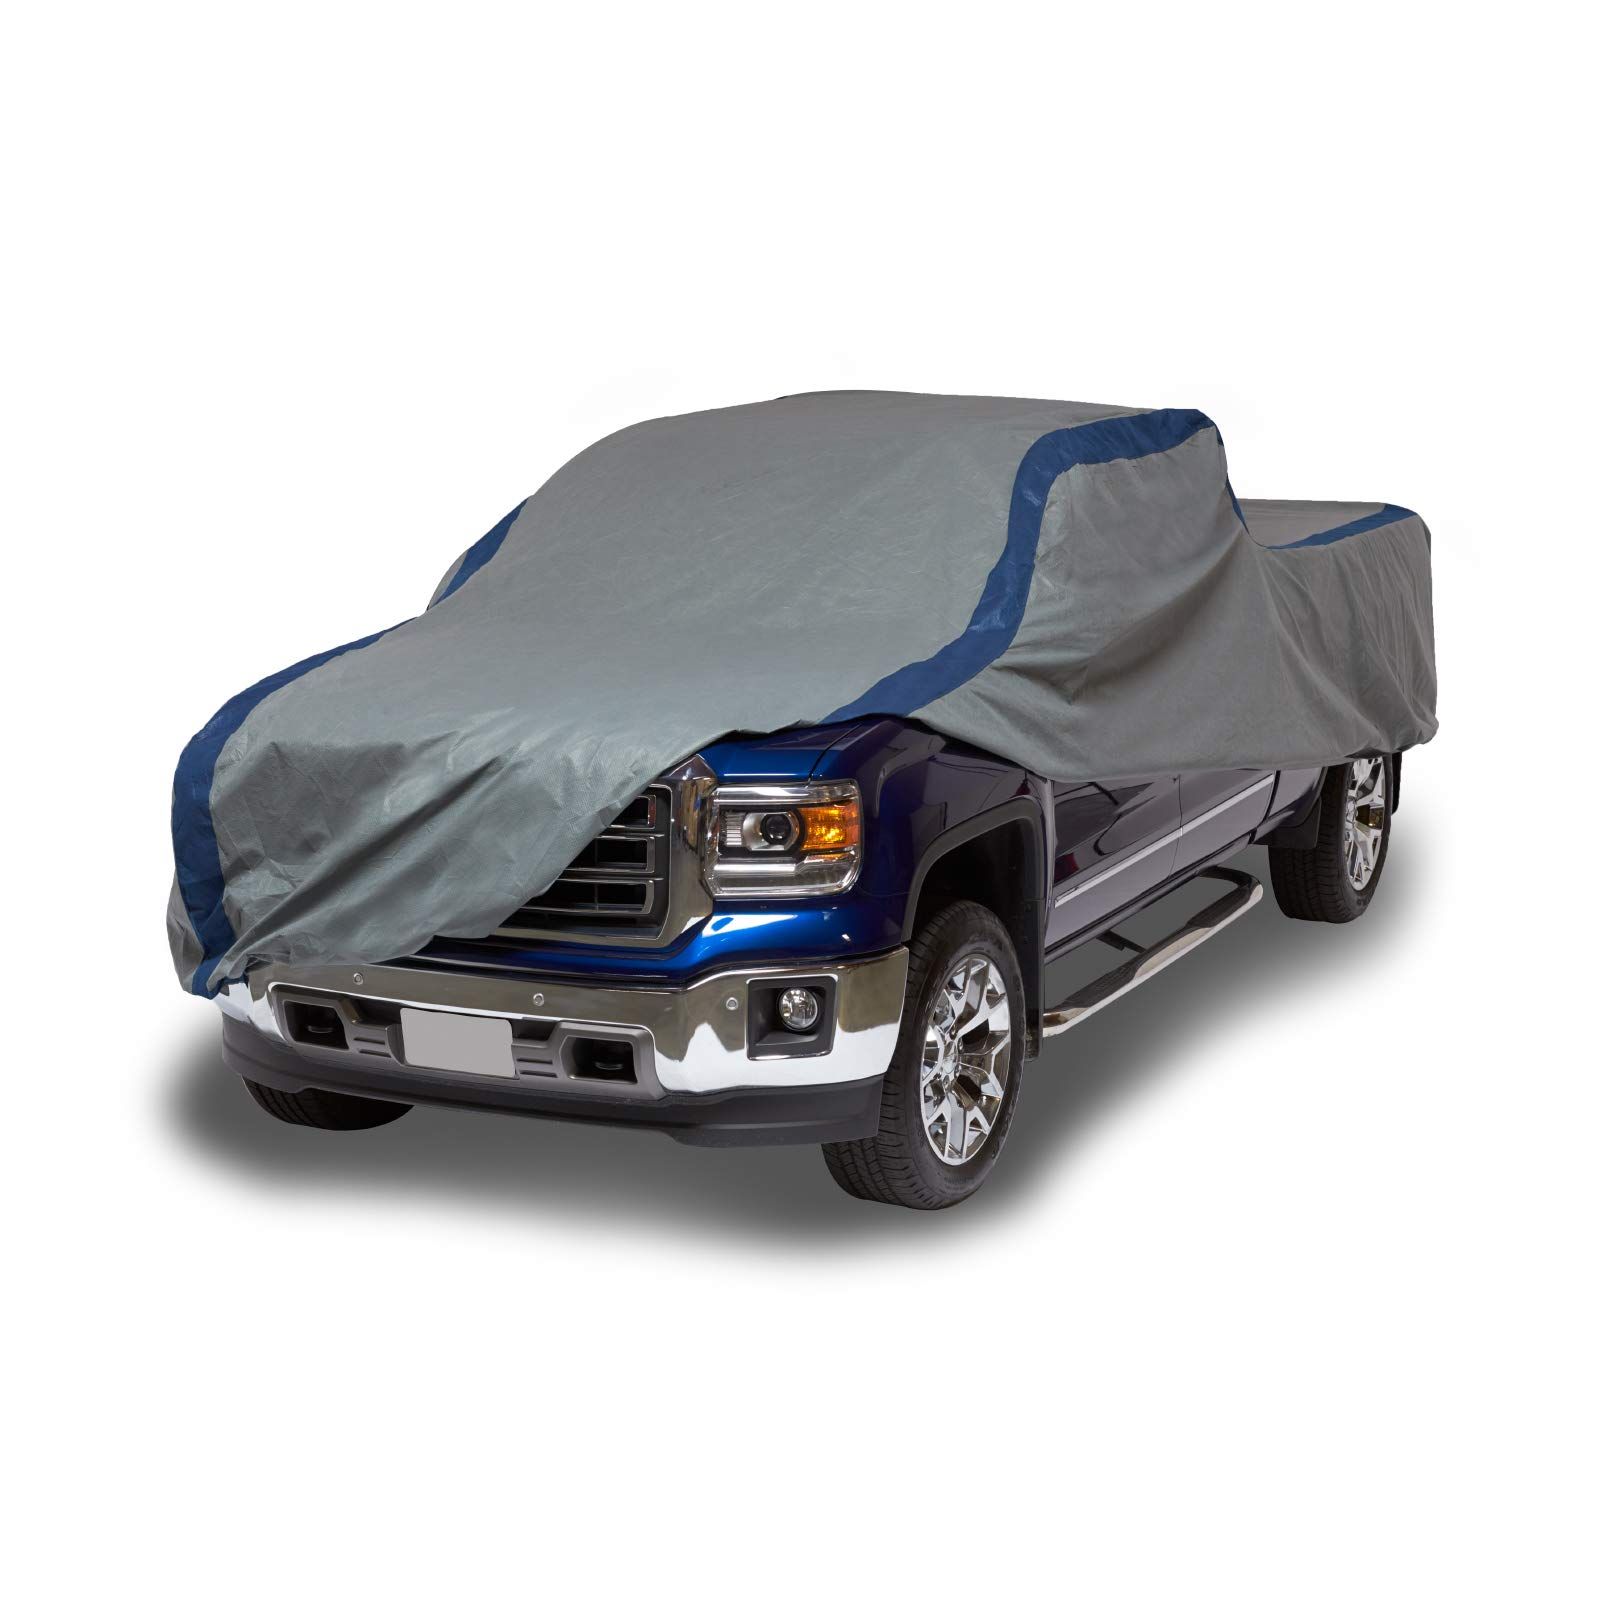 Duck Covers Weather Defender Pickup Truck Cover for Standard Cab Trucks up to 16' 5''